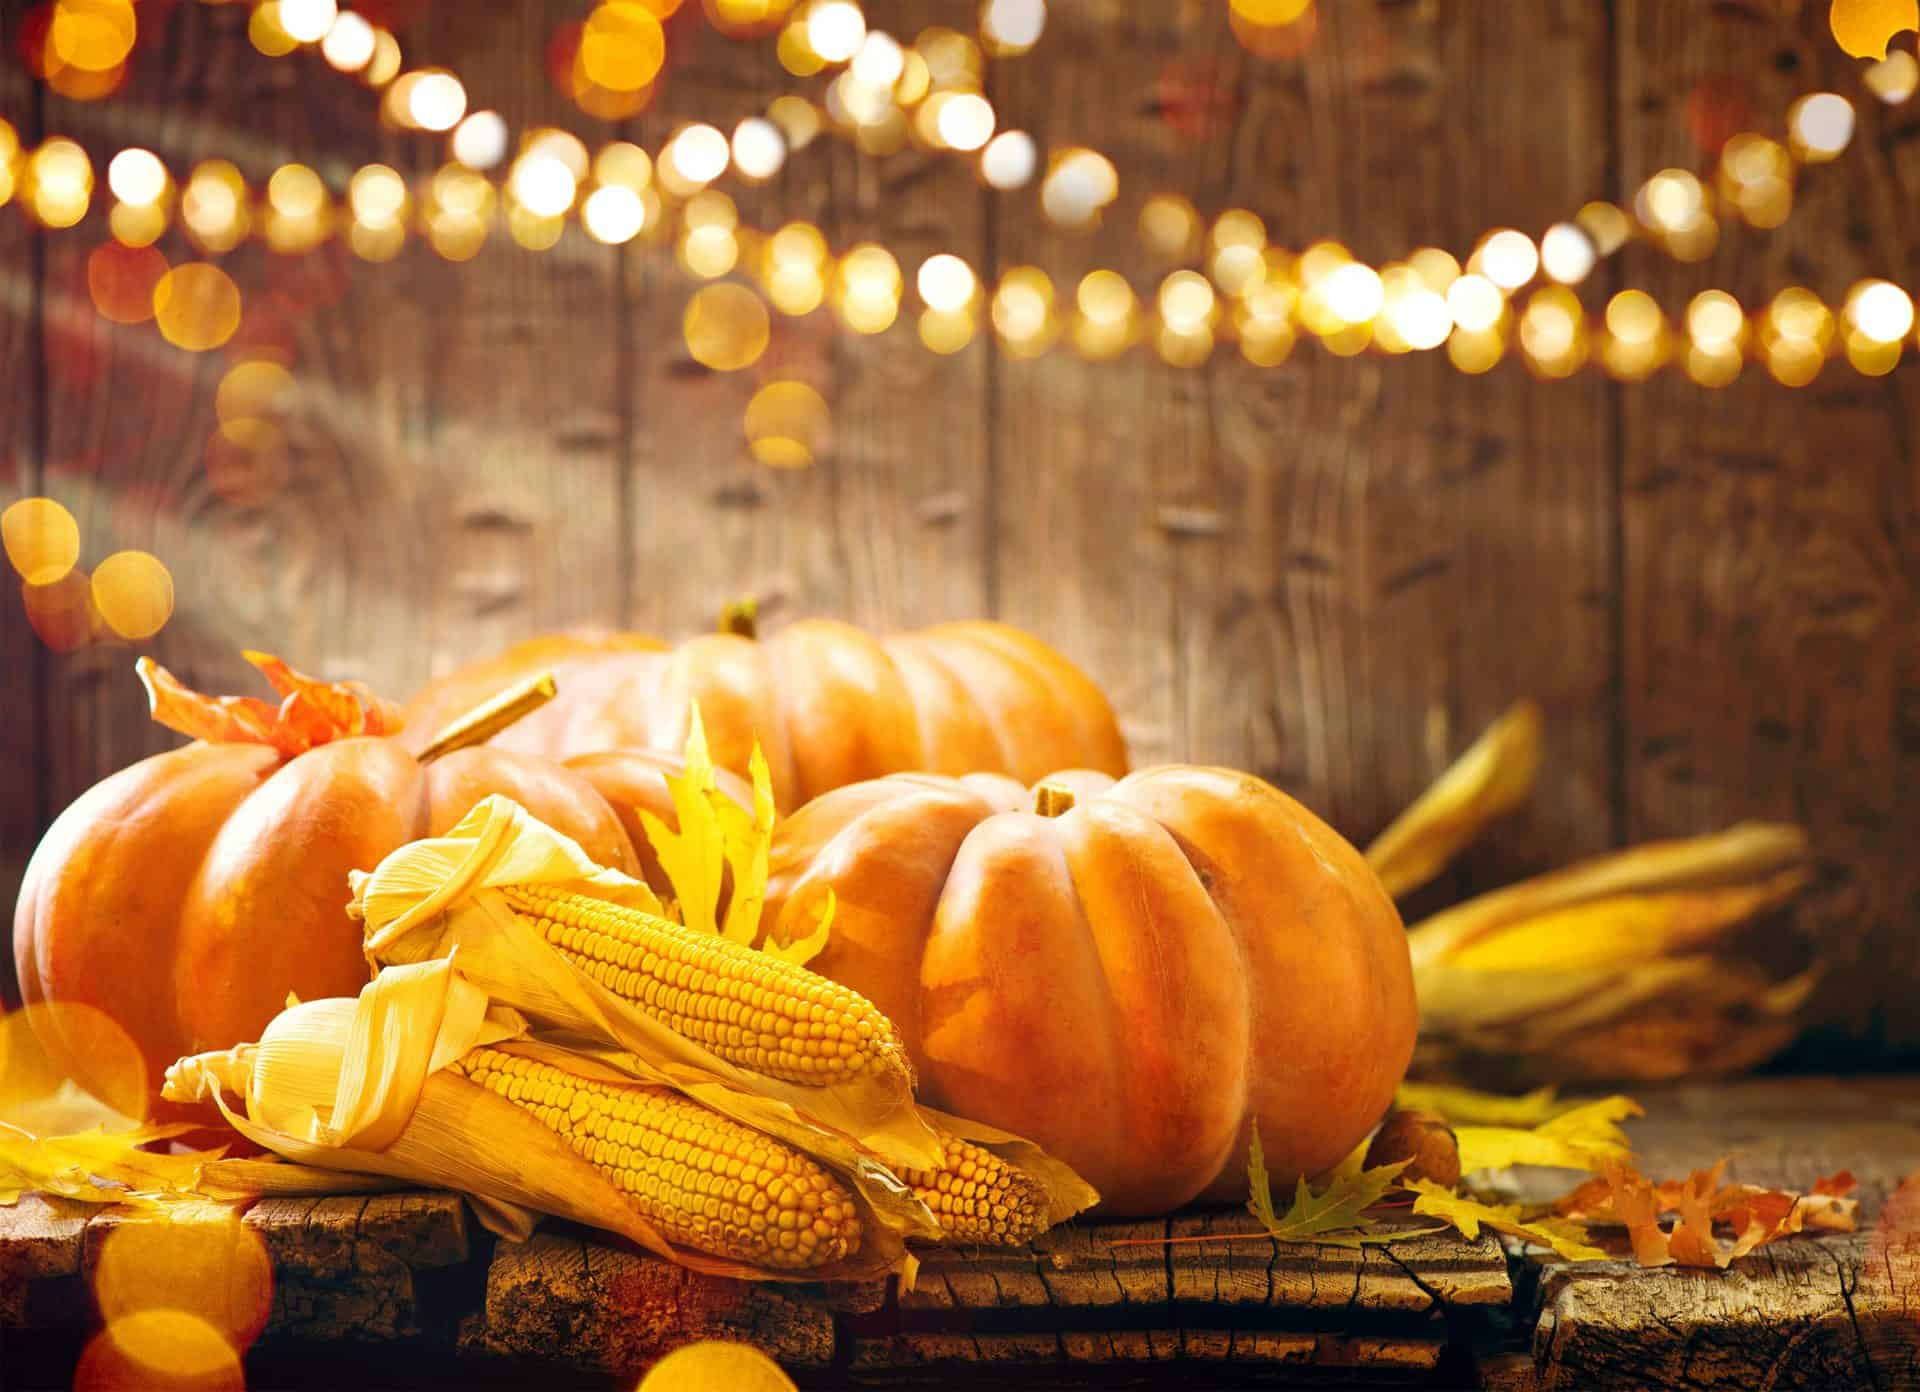 5 recipes for a healthy and thankful mind this Thanksgiving